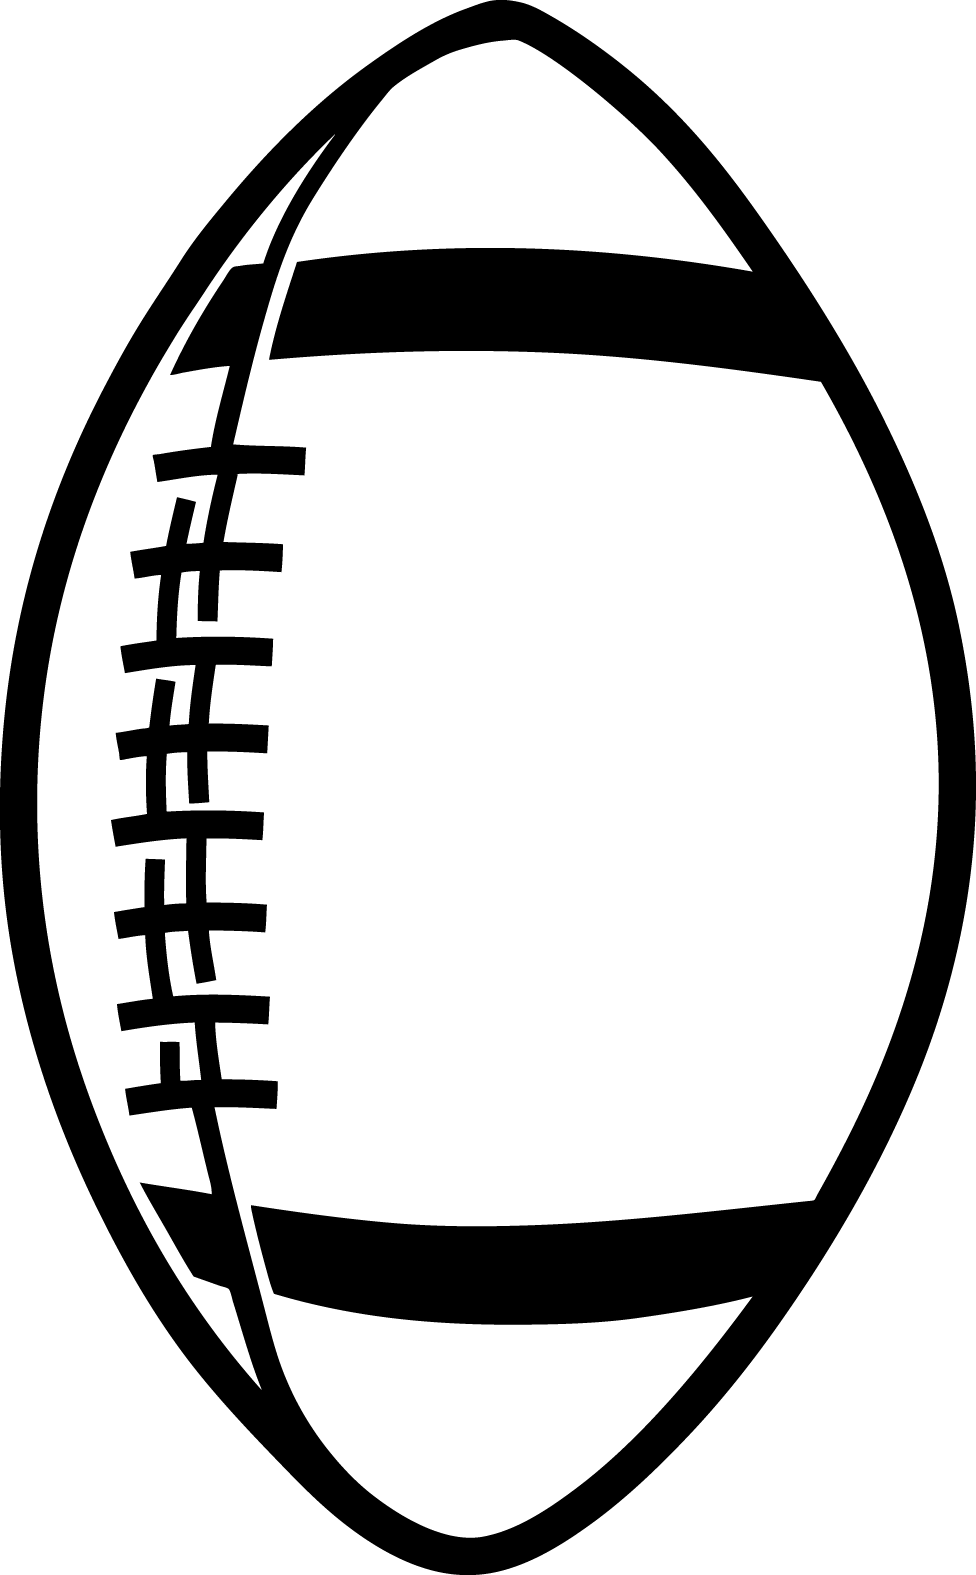 Football field outline png clipart